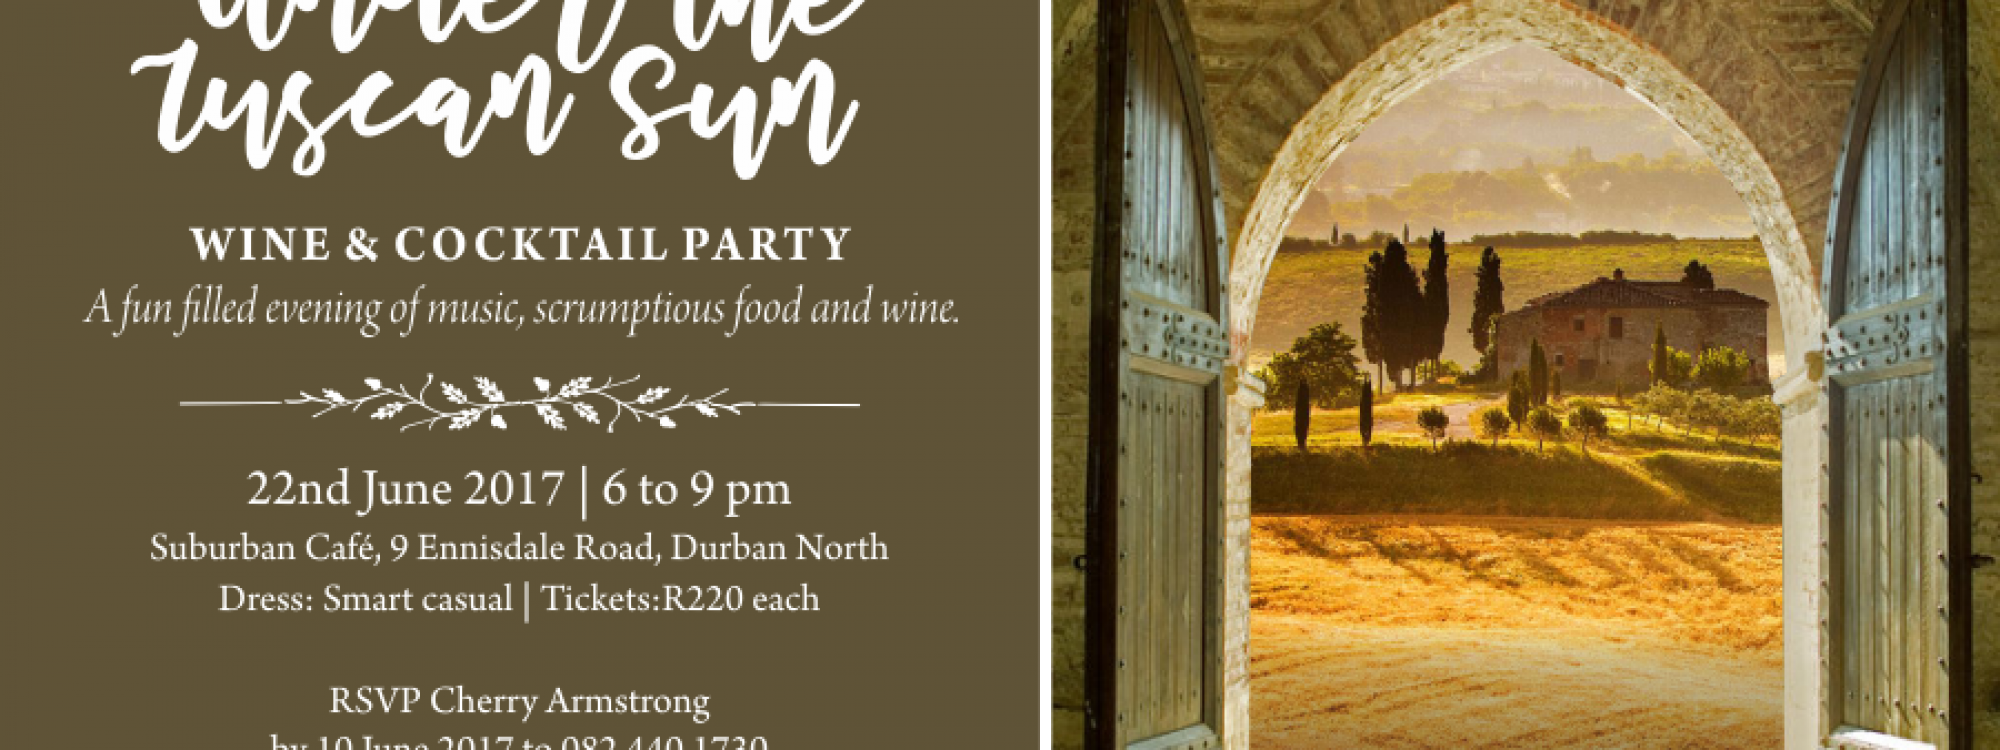 Celebrate_Life_Tuscan_invite_June_2017_new